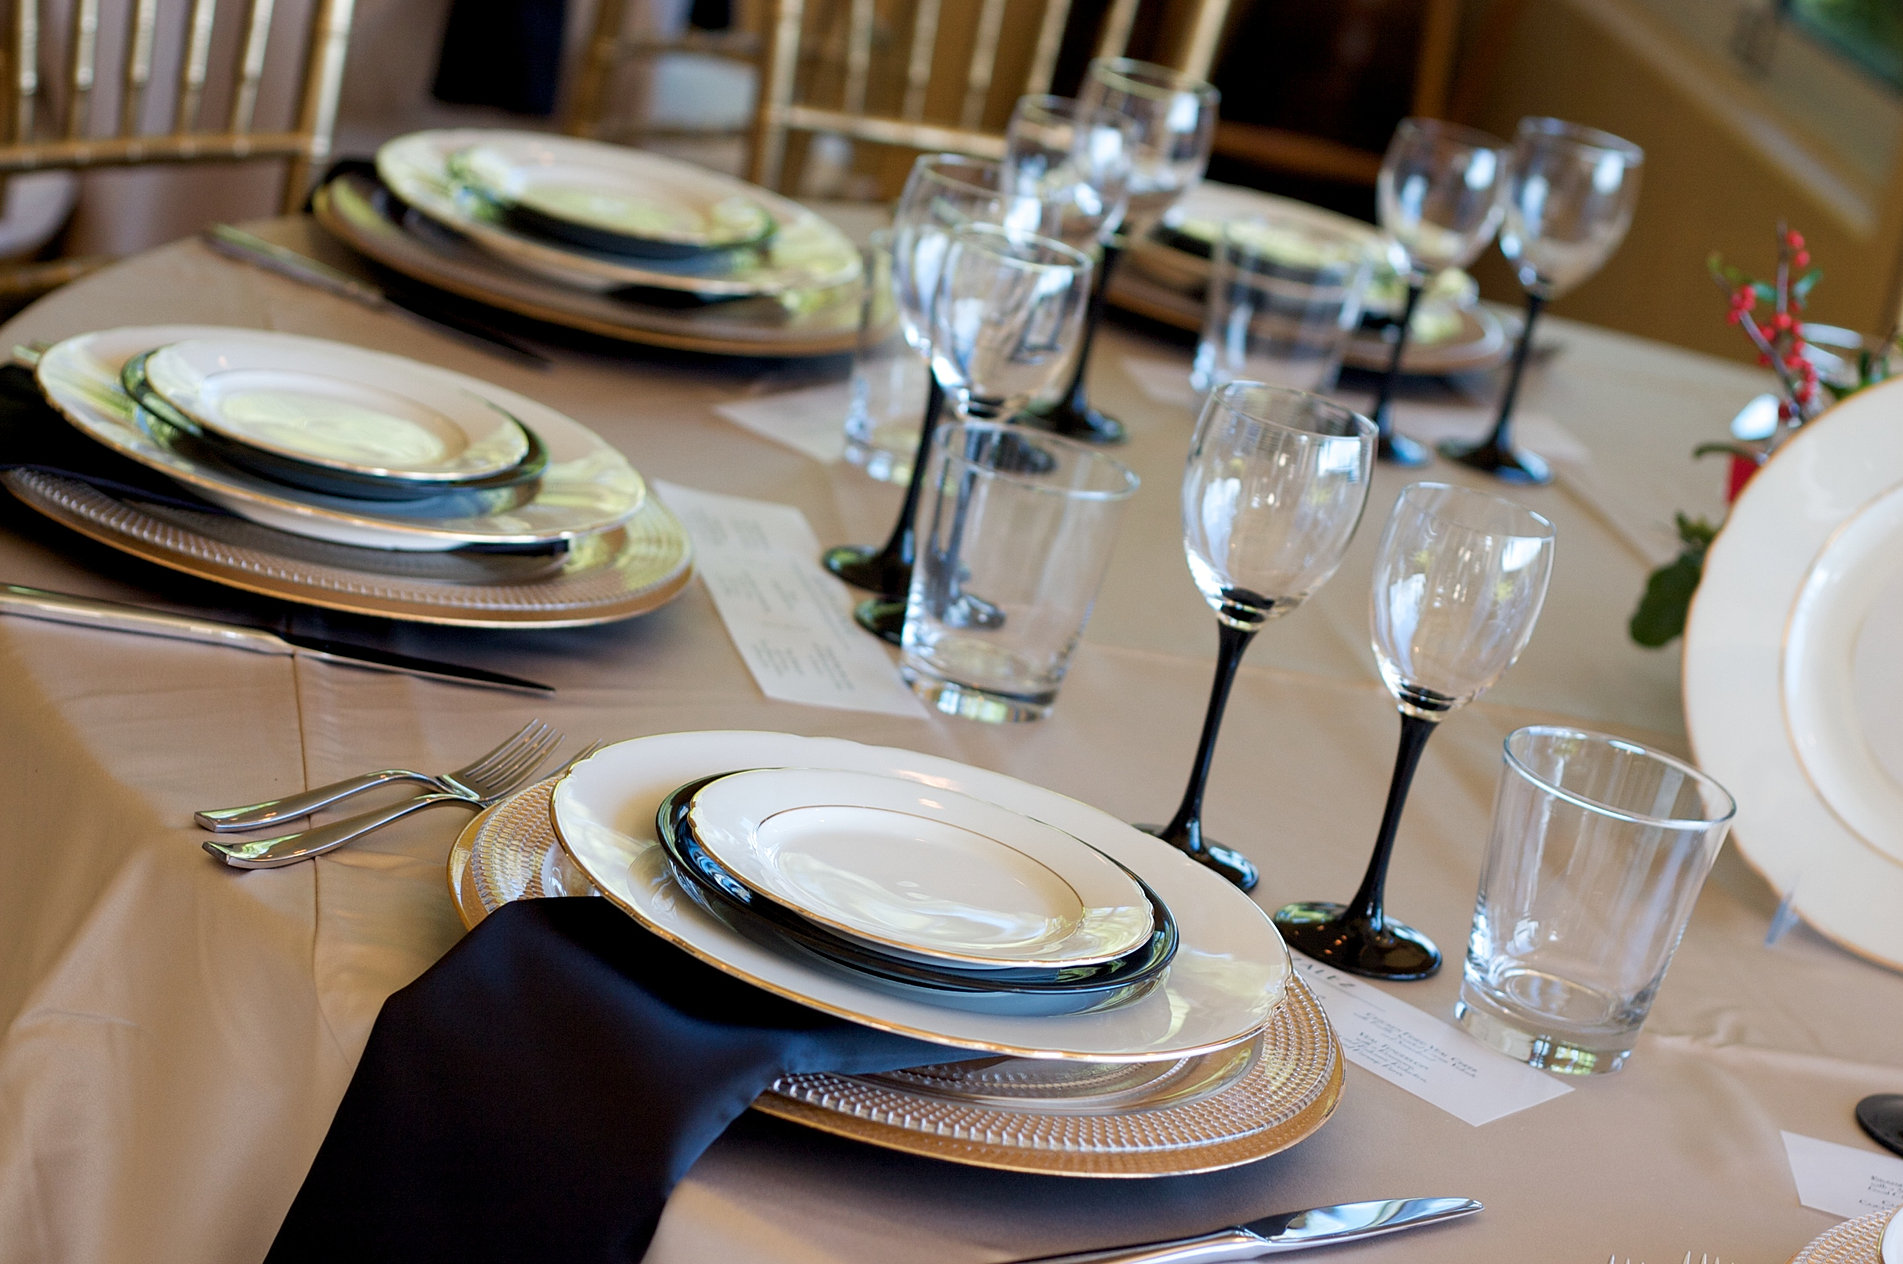 Restaurant table setup - Dining Sets